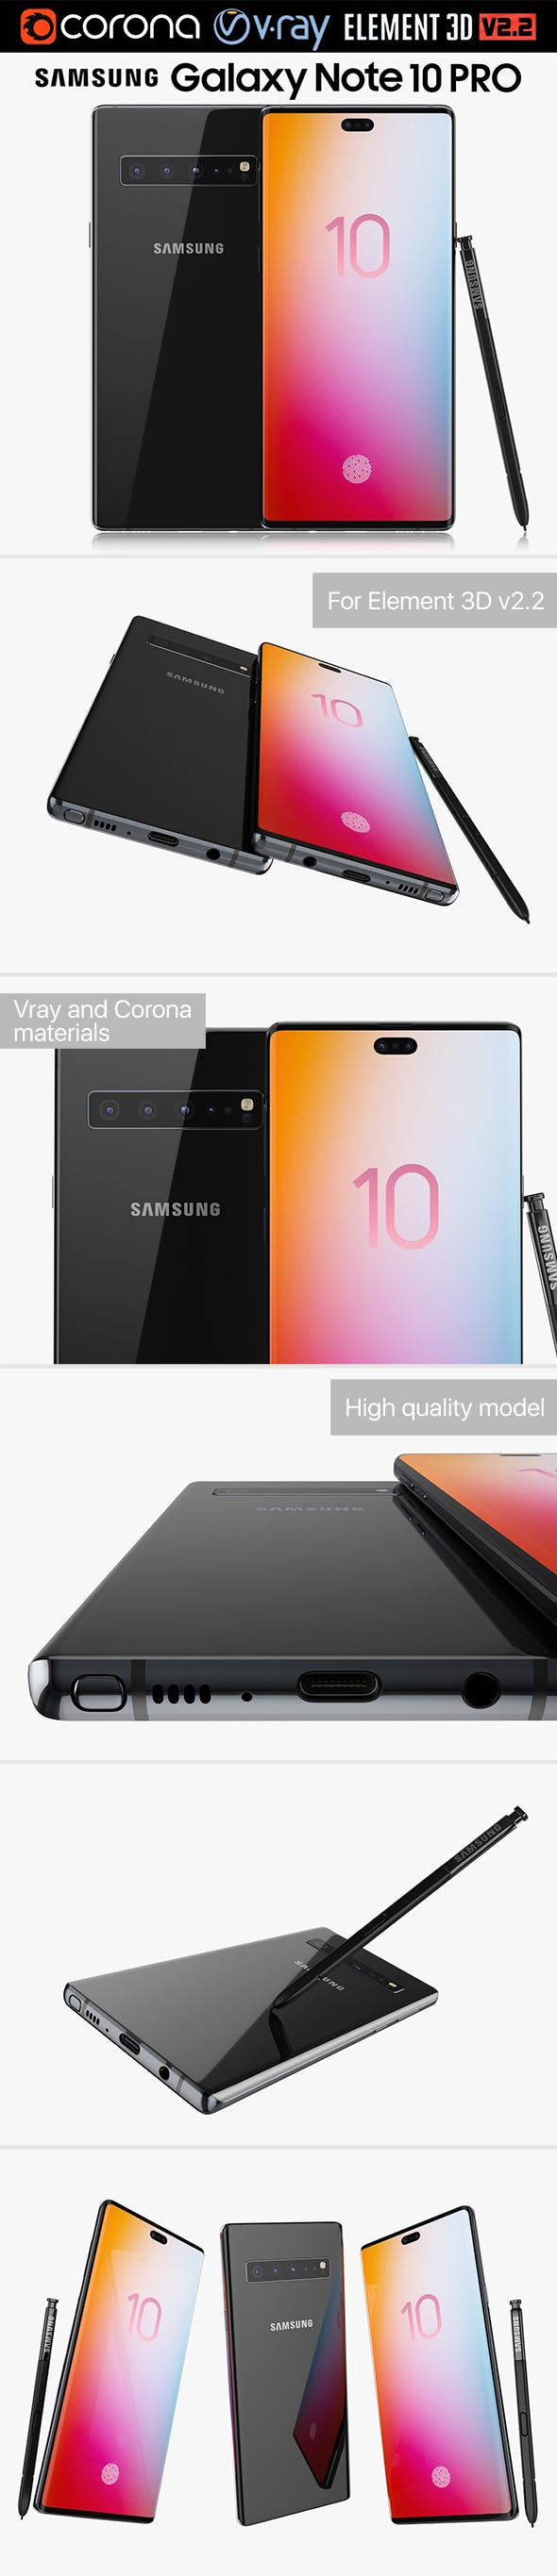 Samsung Galaxy Note 10 PRO - 3DOcean Item for Sale